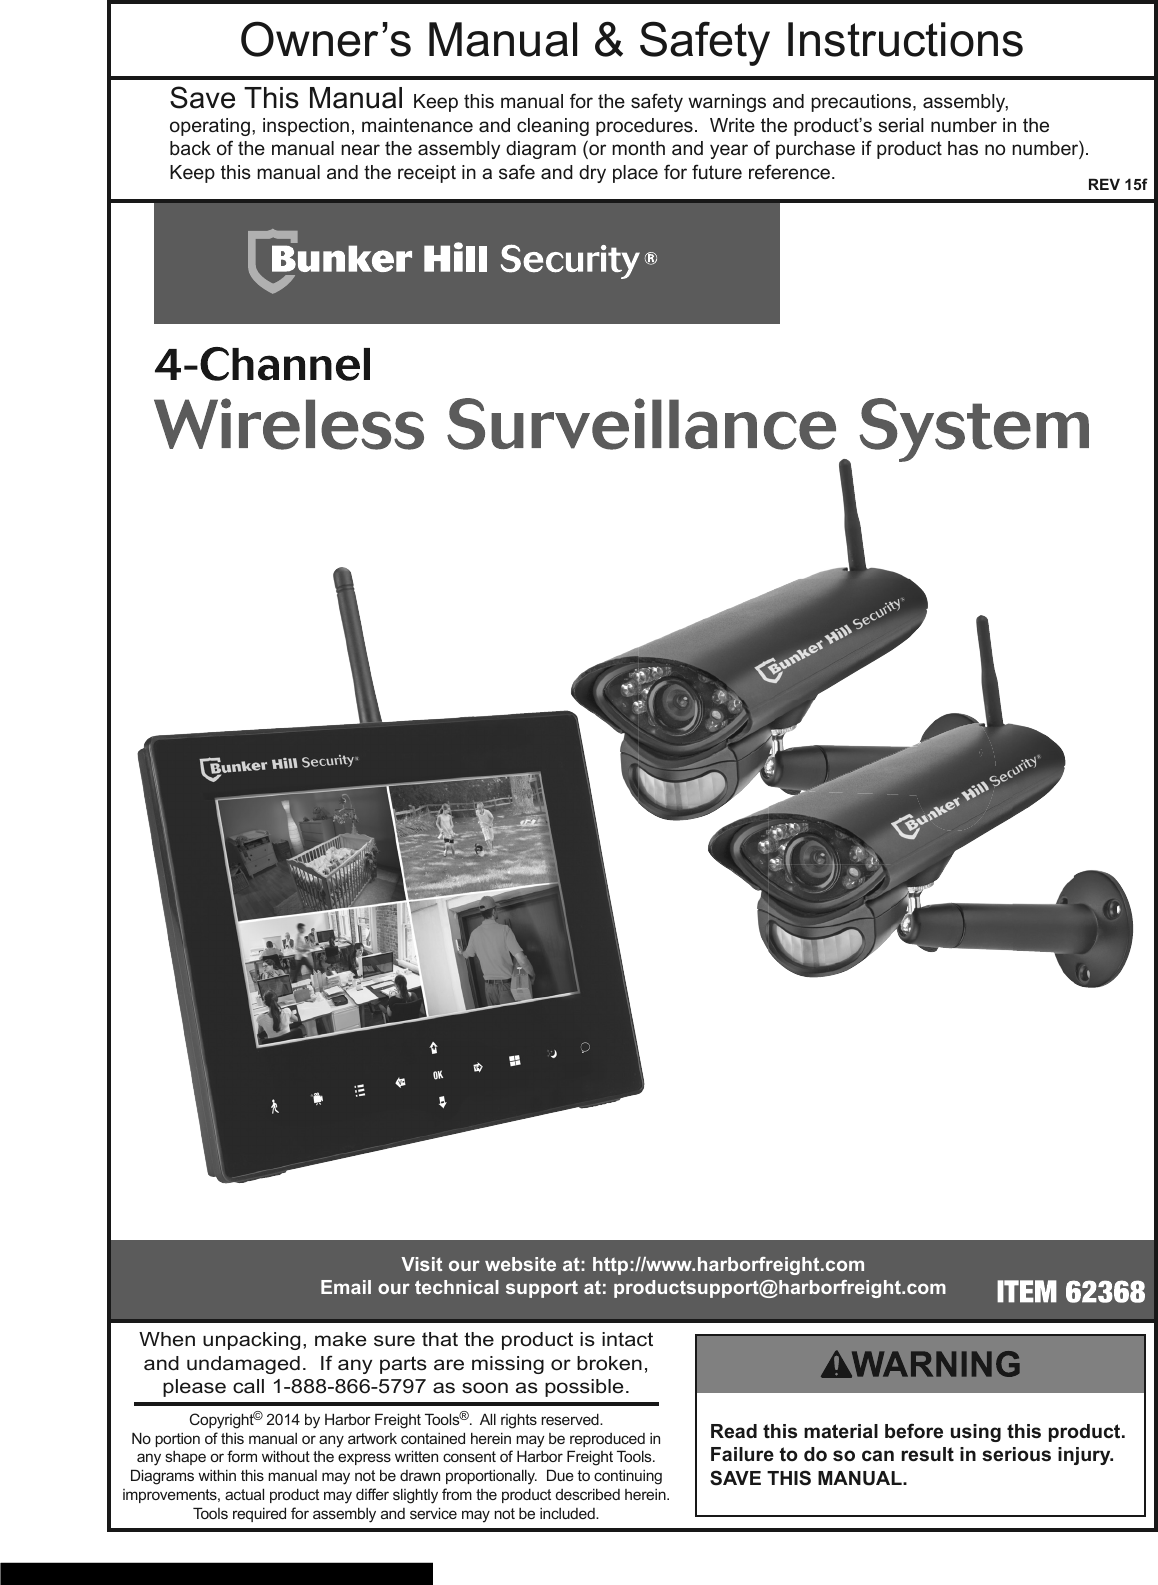 Bunker Hill Security 62368 Owners Manual 822388 Manualslib Makes It